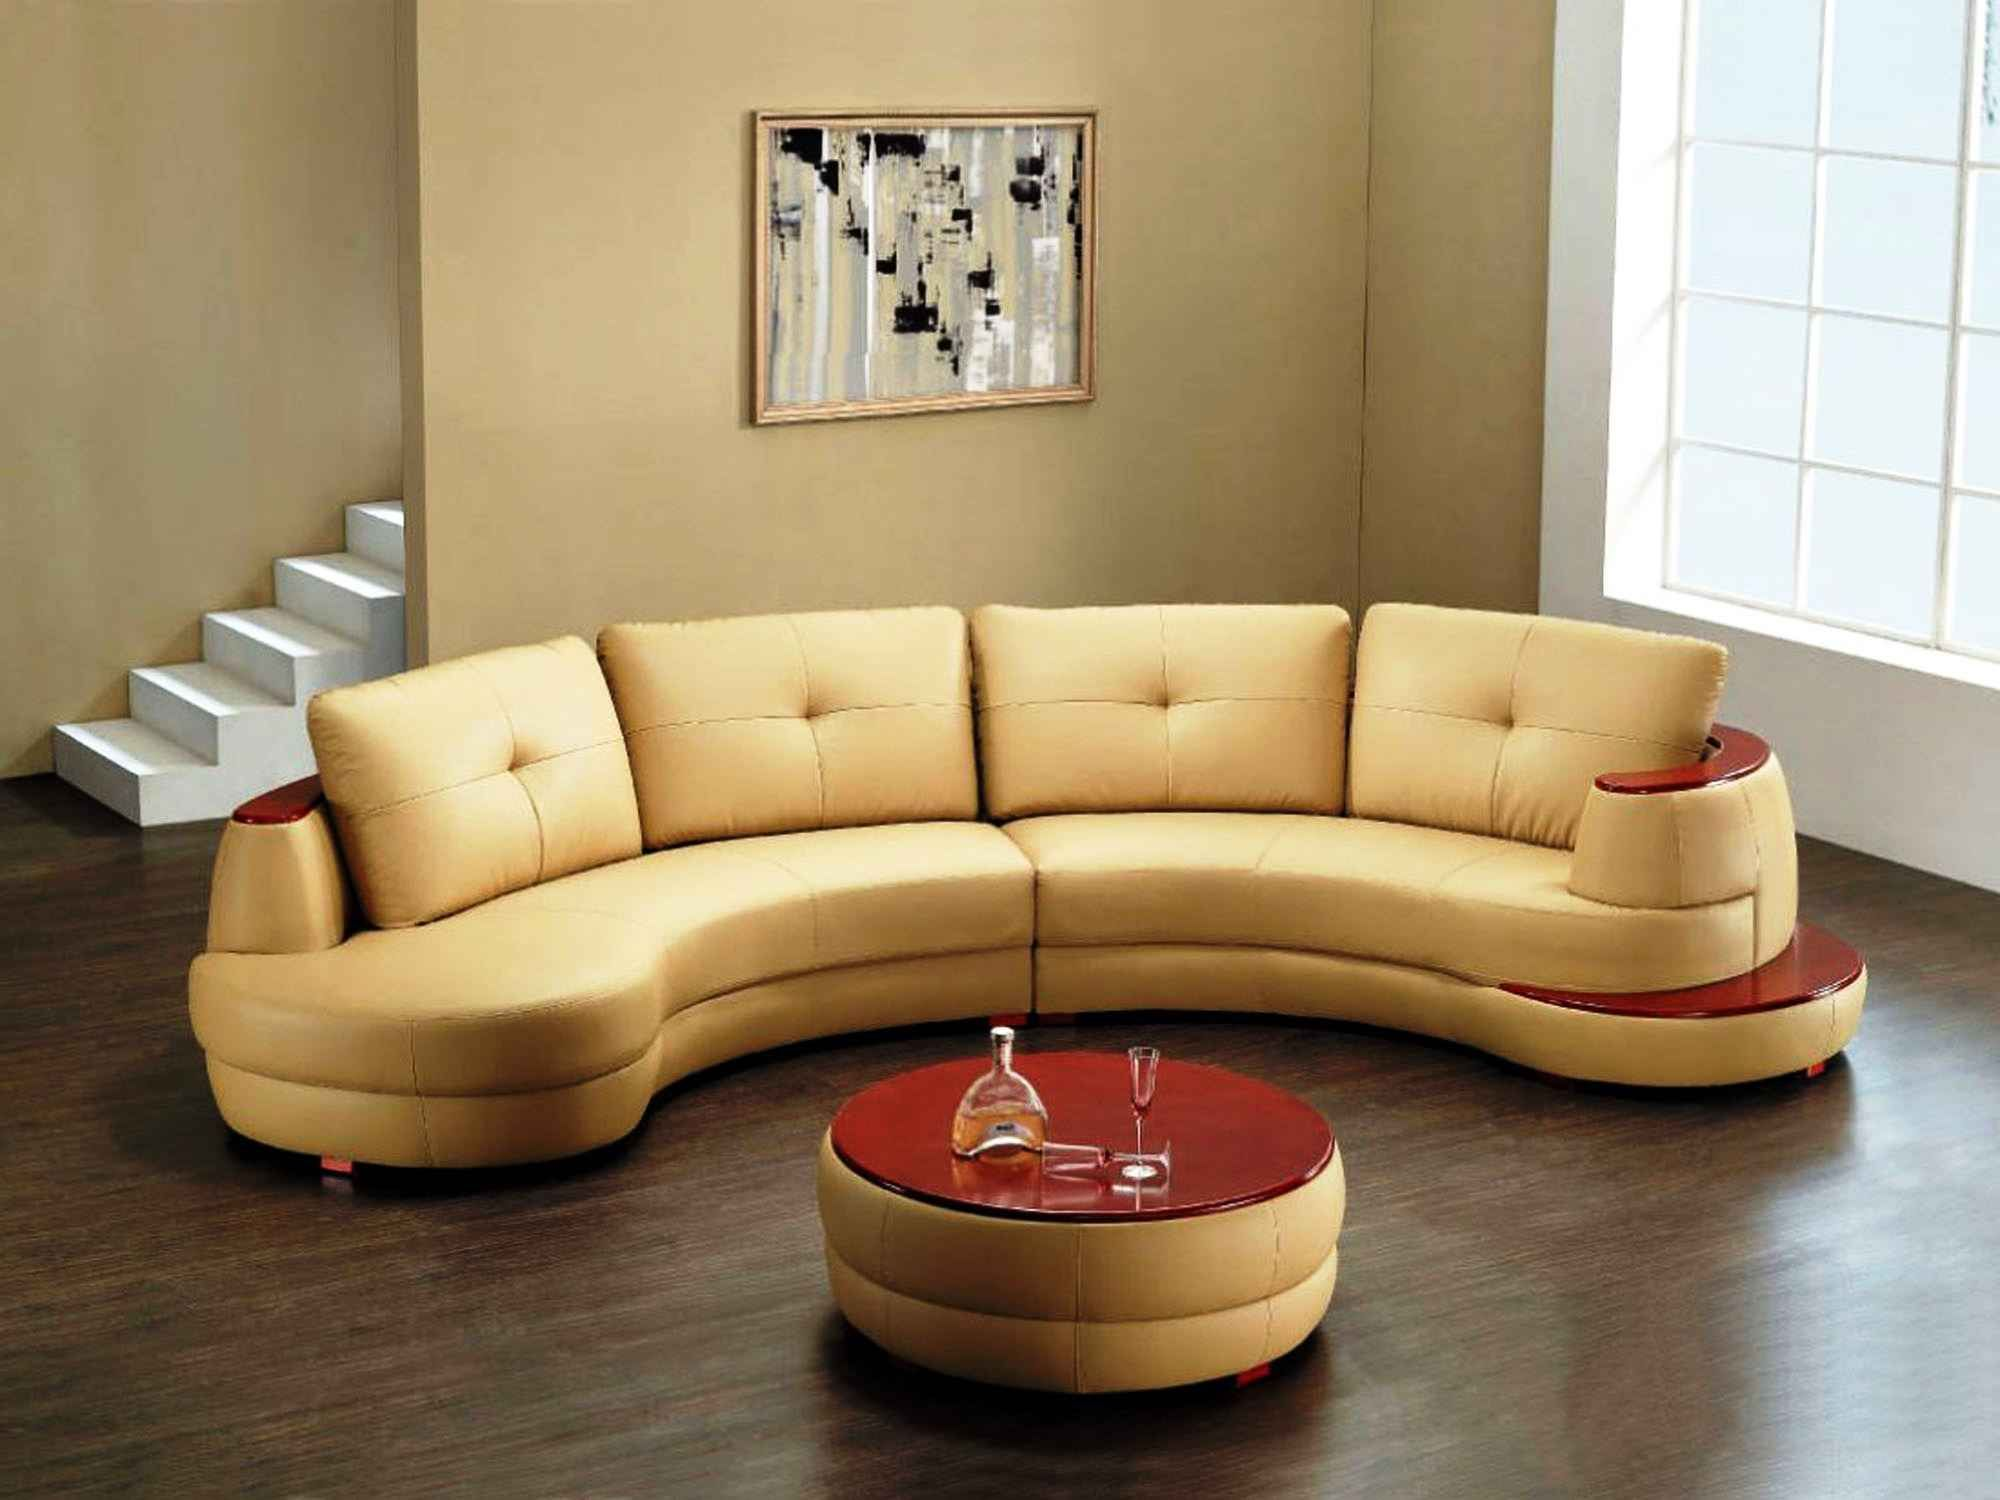 Round Sofa Chair With Cup Holder Furniture Pinterest Round